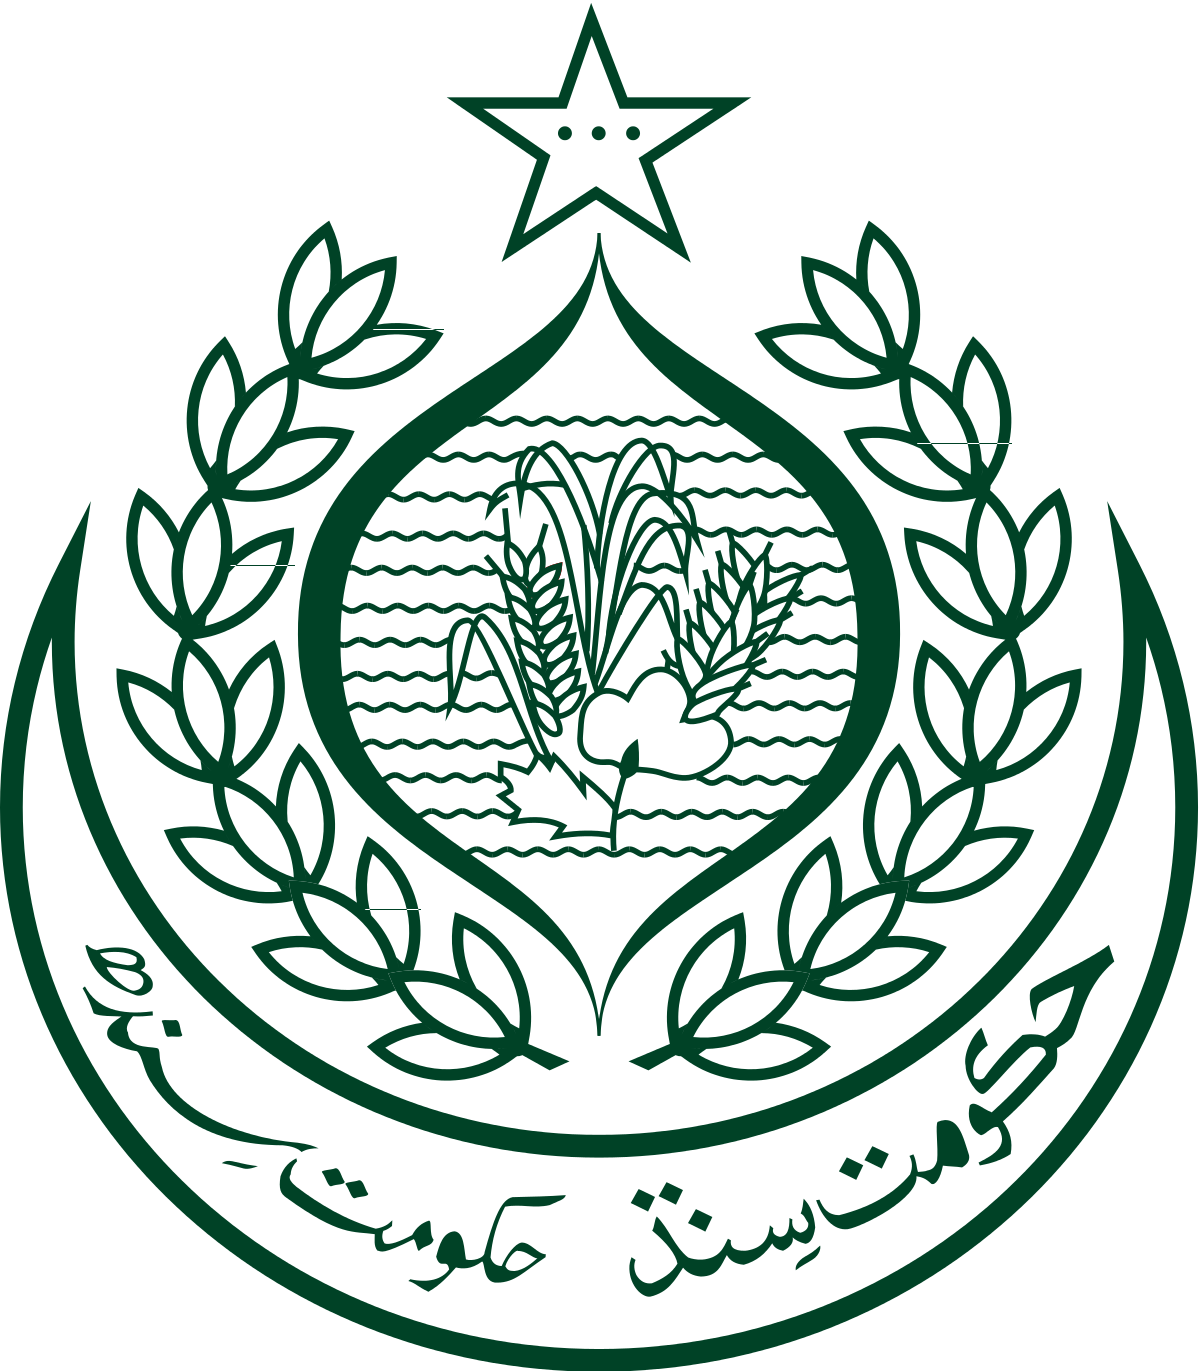 Law and Justice Commission of Pakistan